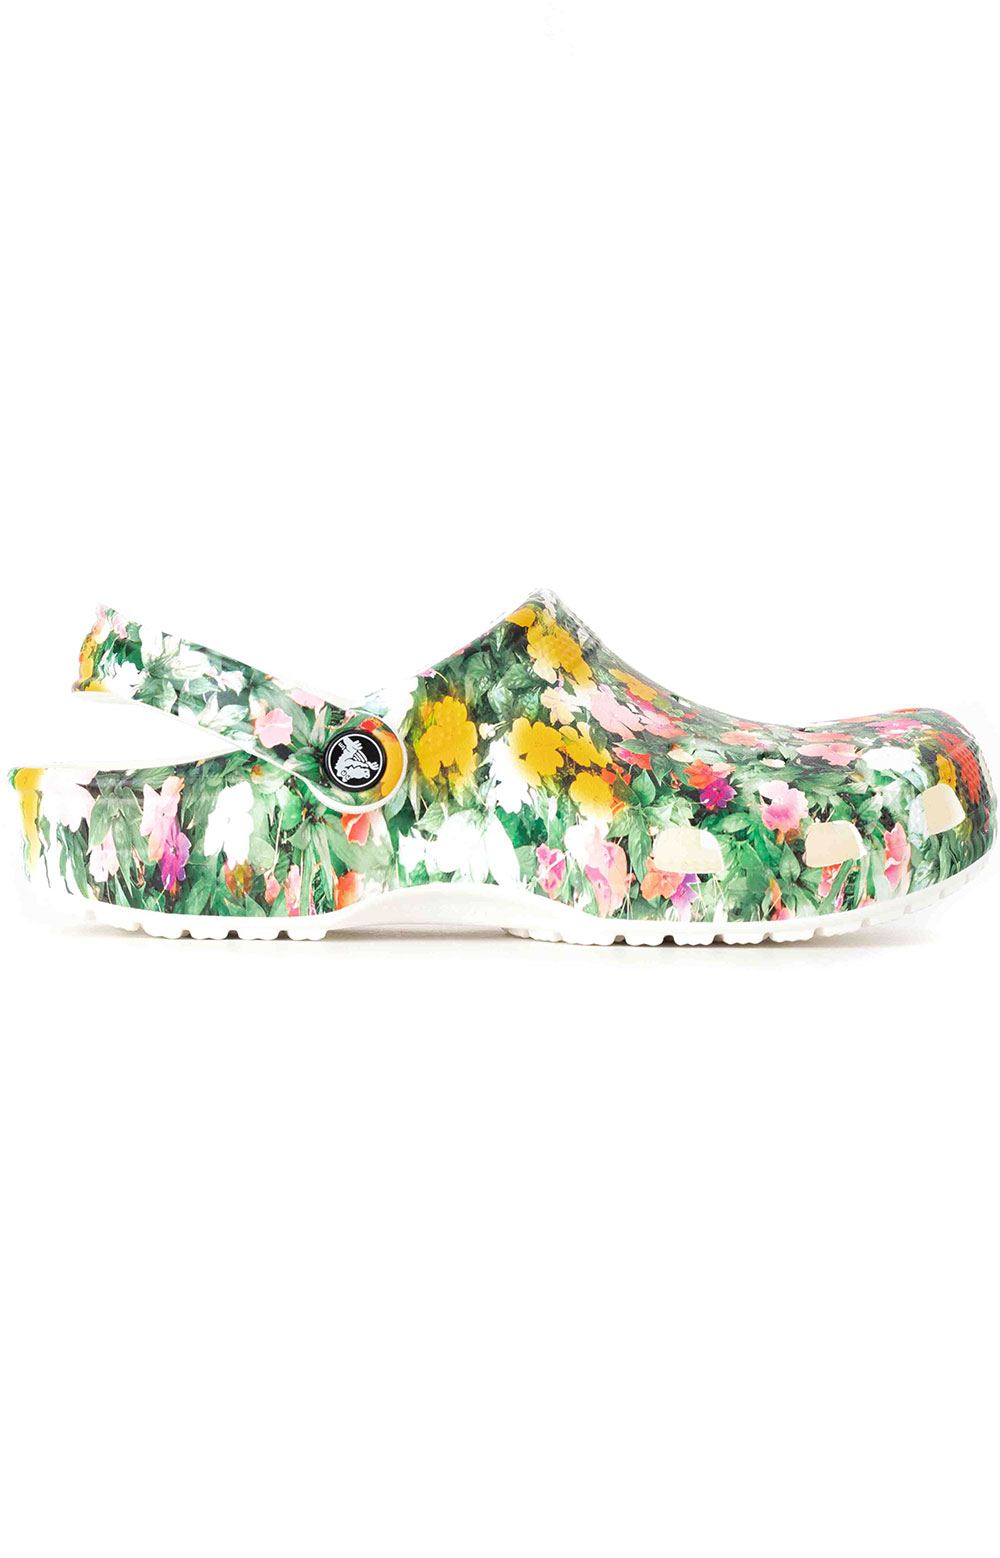 Classic Printed Floral Clogs - White/Multi 2